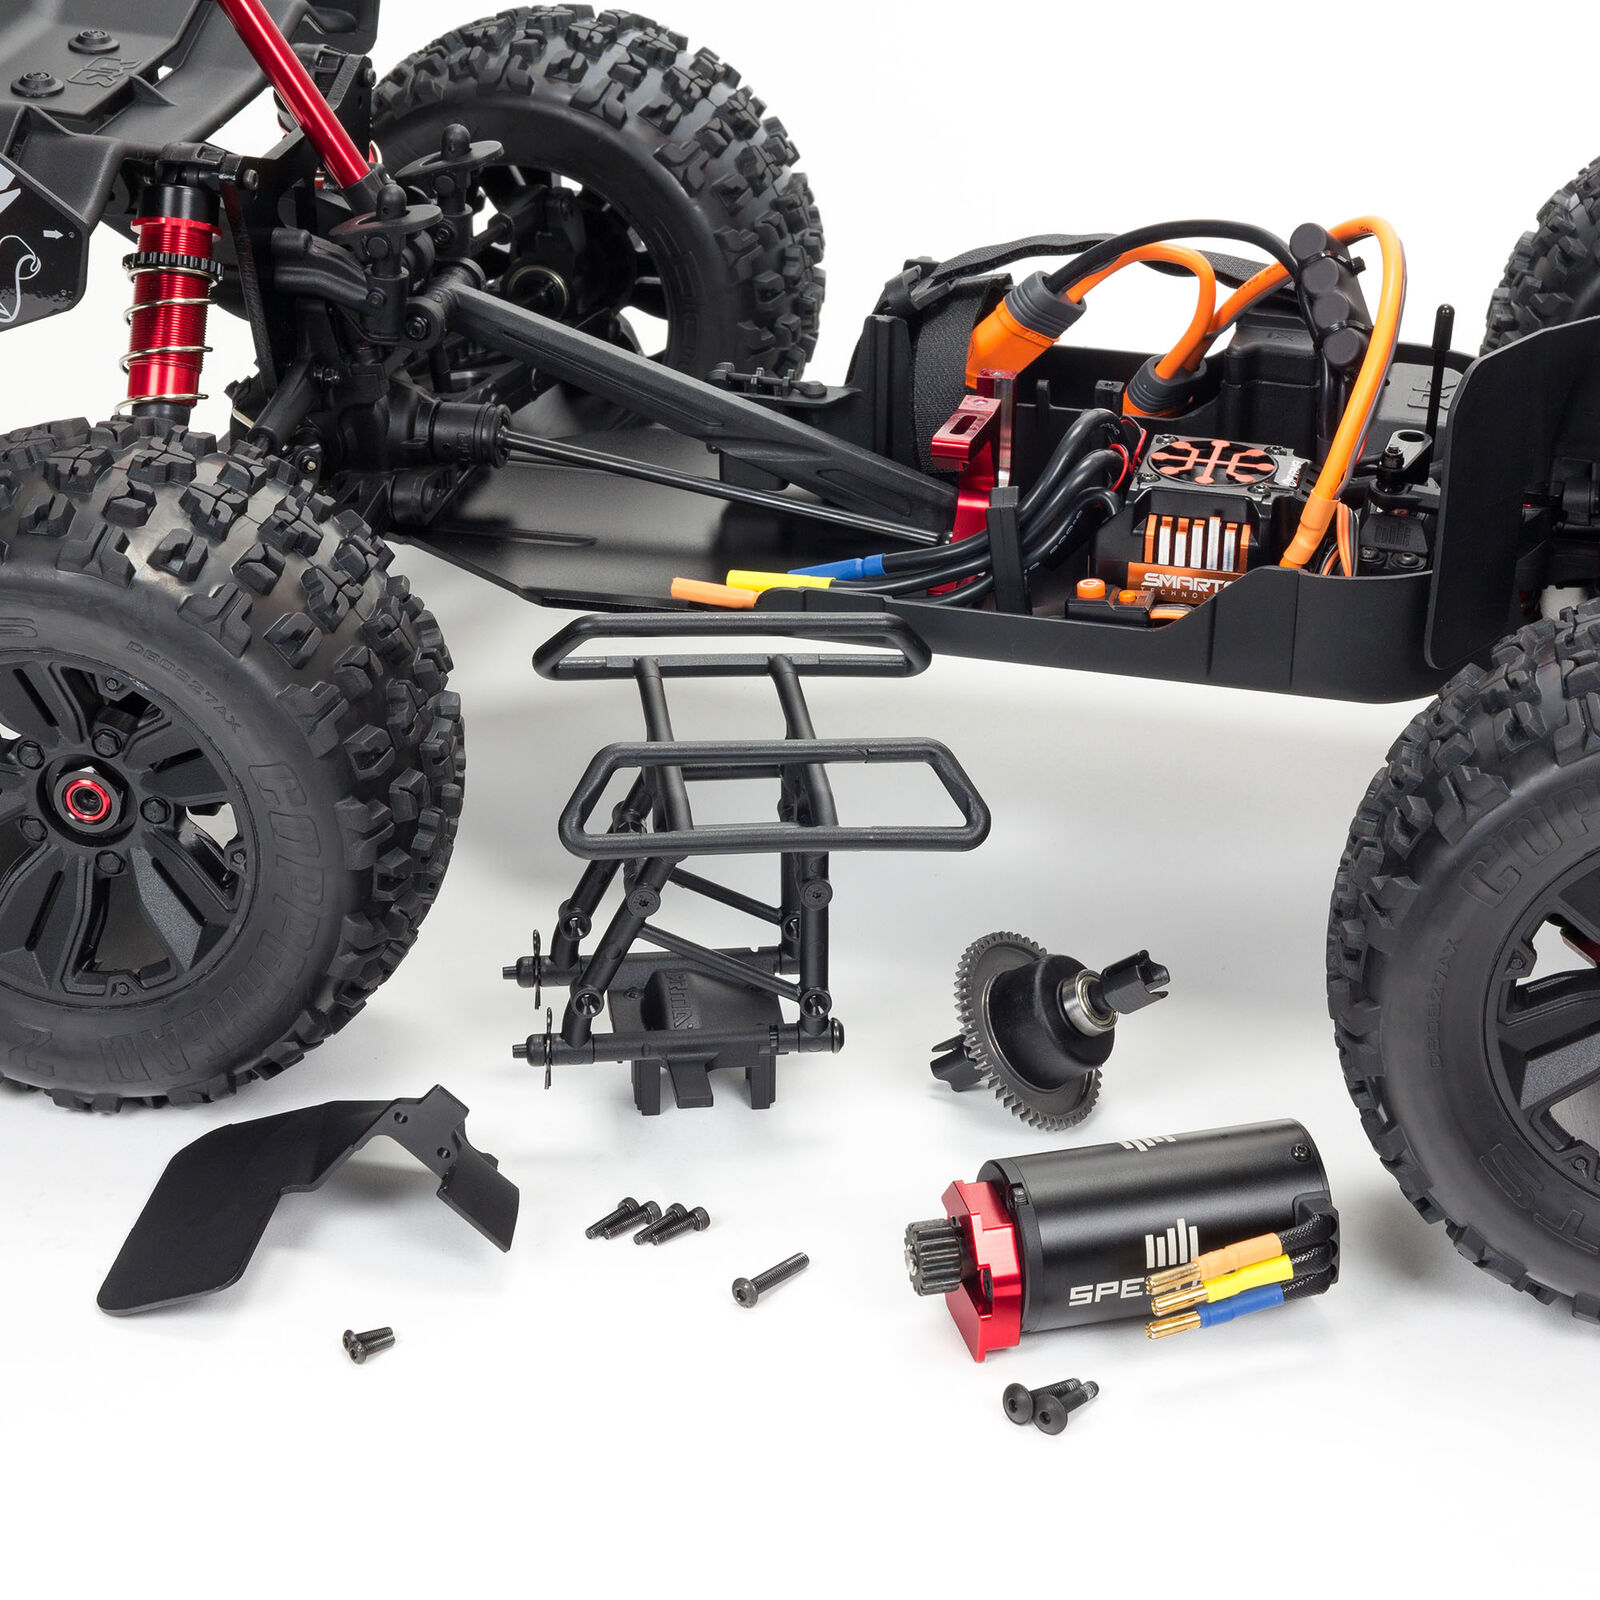 1/8 KRATON 6S V5 4WD BLX Speed Monster Truck with Spektrum Firma RTR, Blue